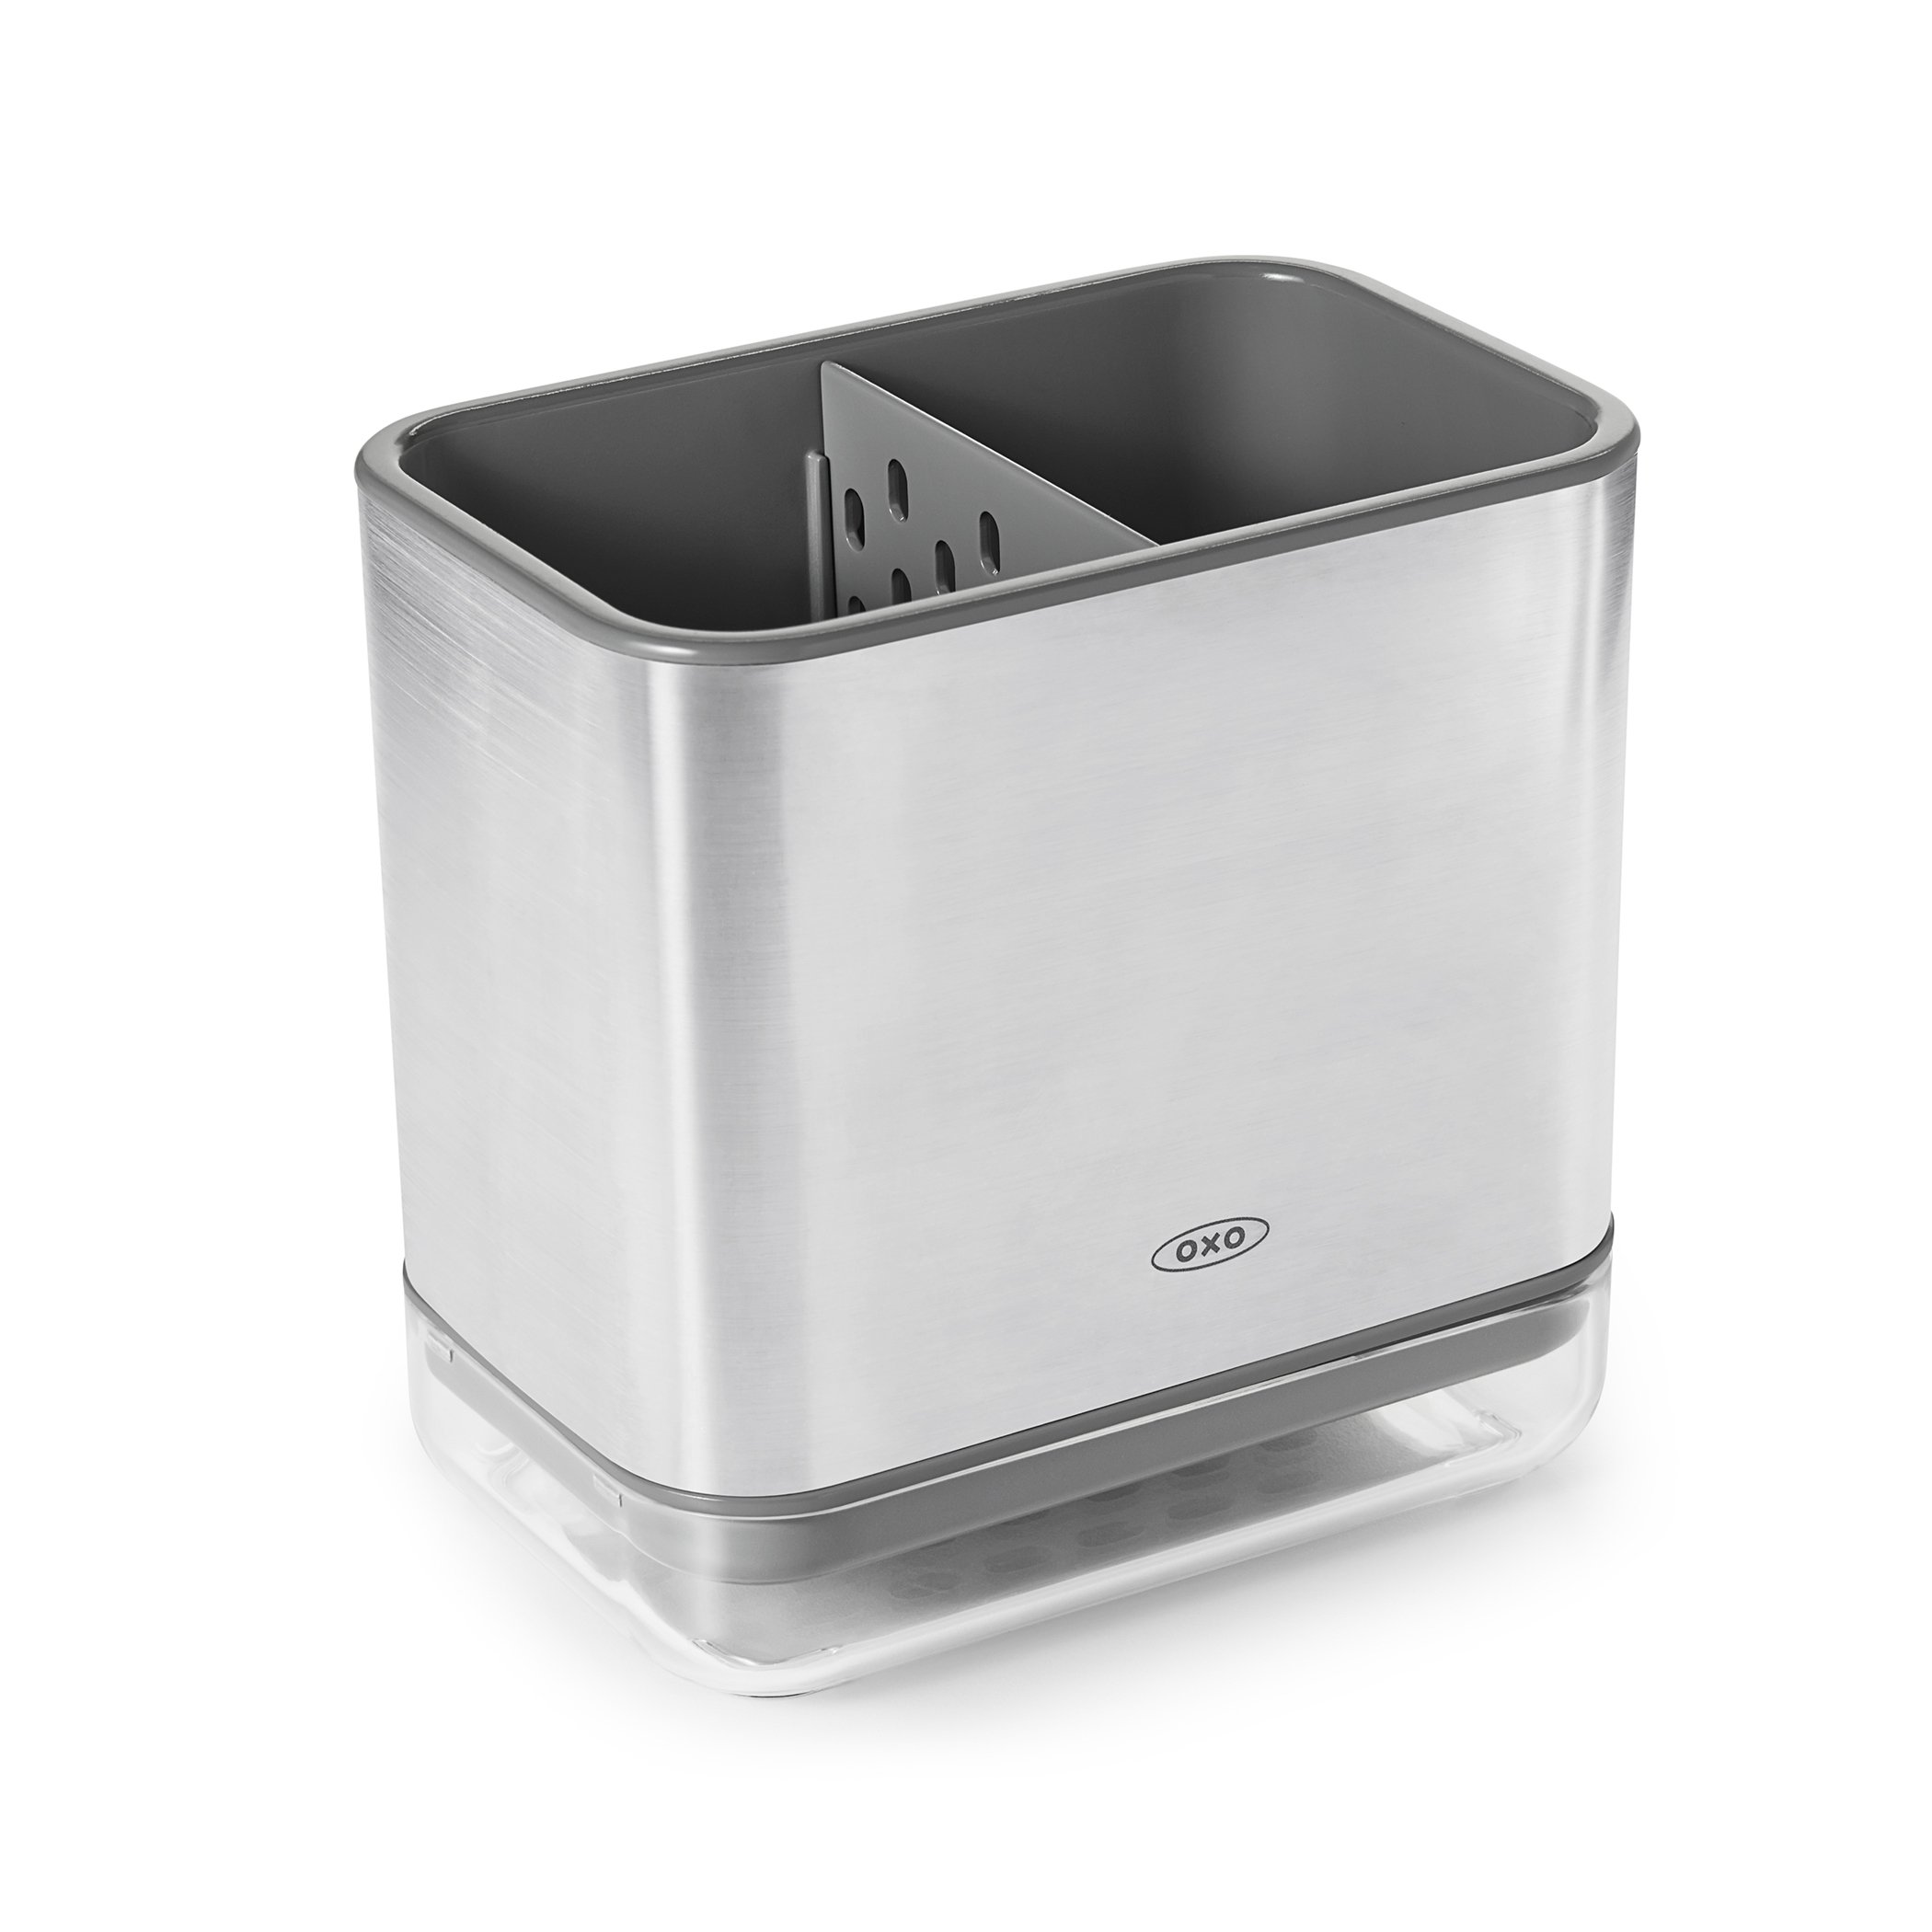 OXO Good Grips Stainless Steel Sinkware Caddy by OXO